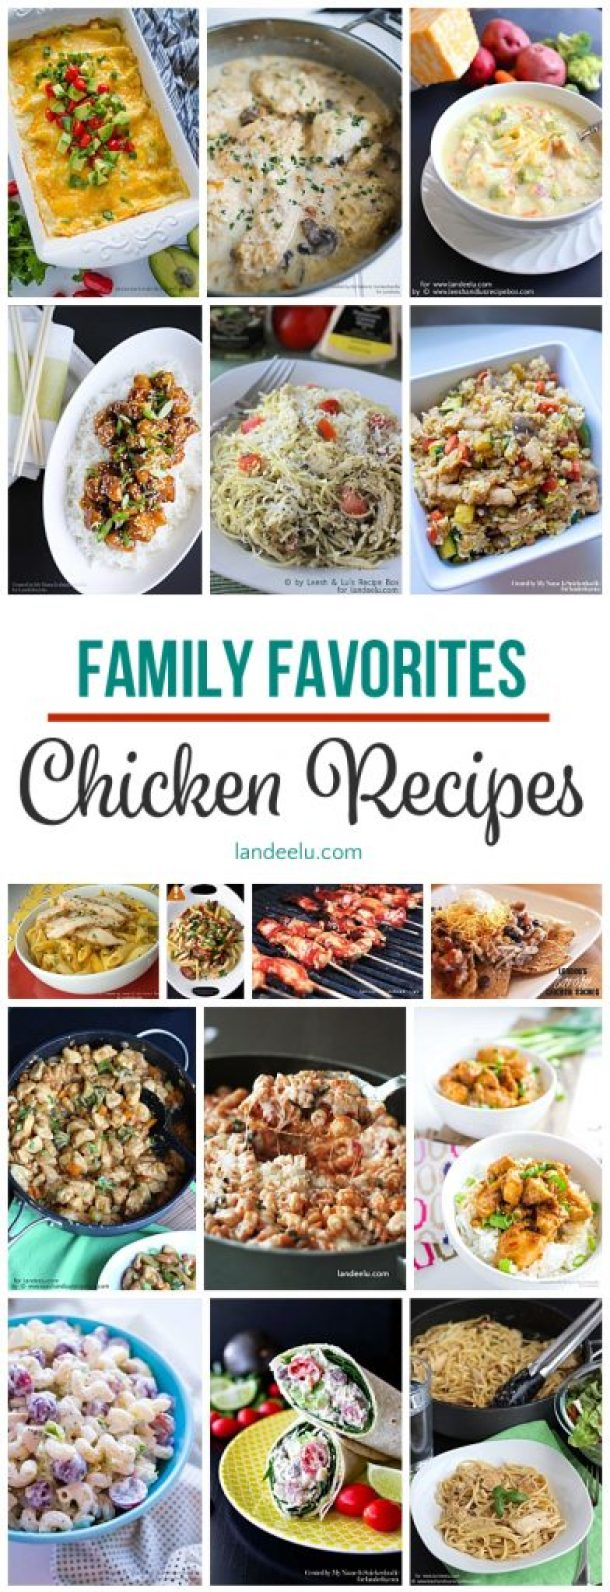 Our favorite chicken recipes all in one place! Perfect for families!